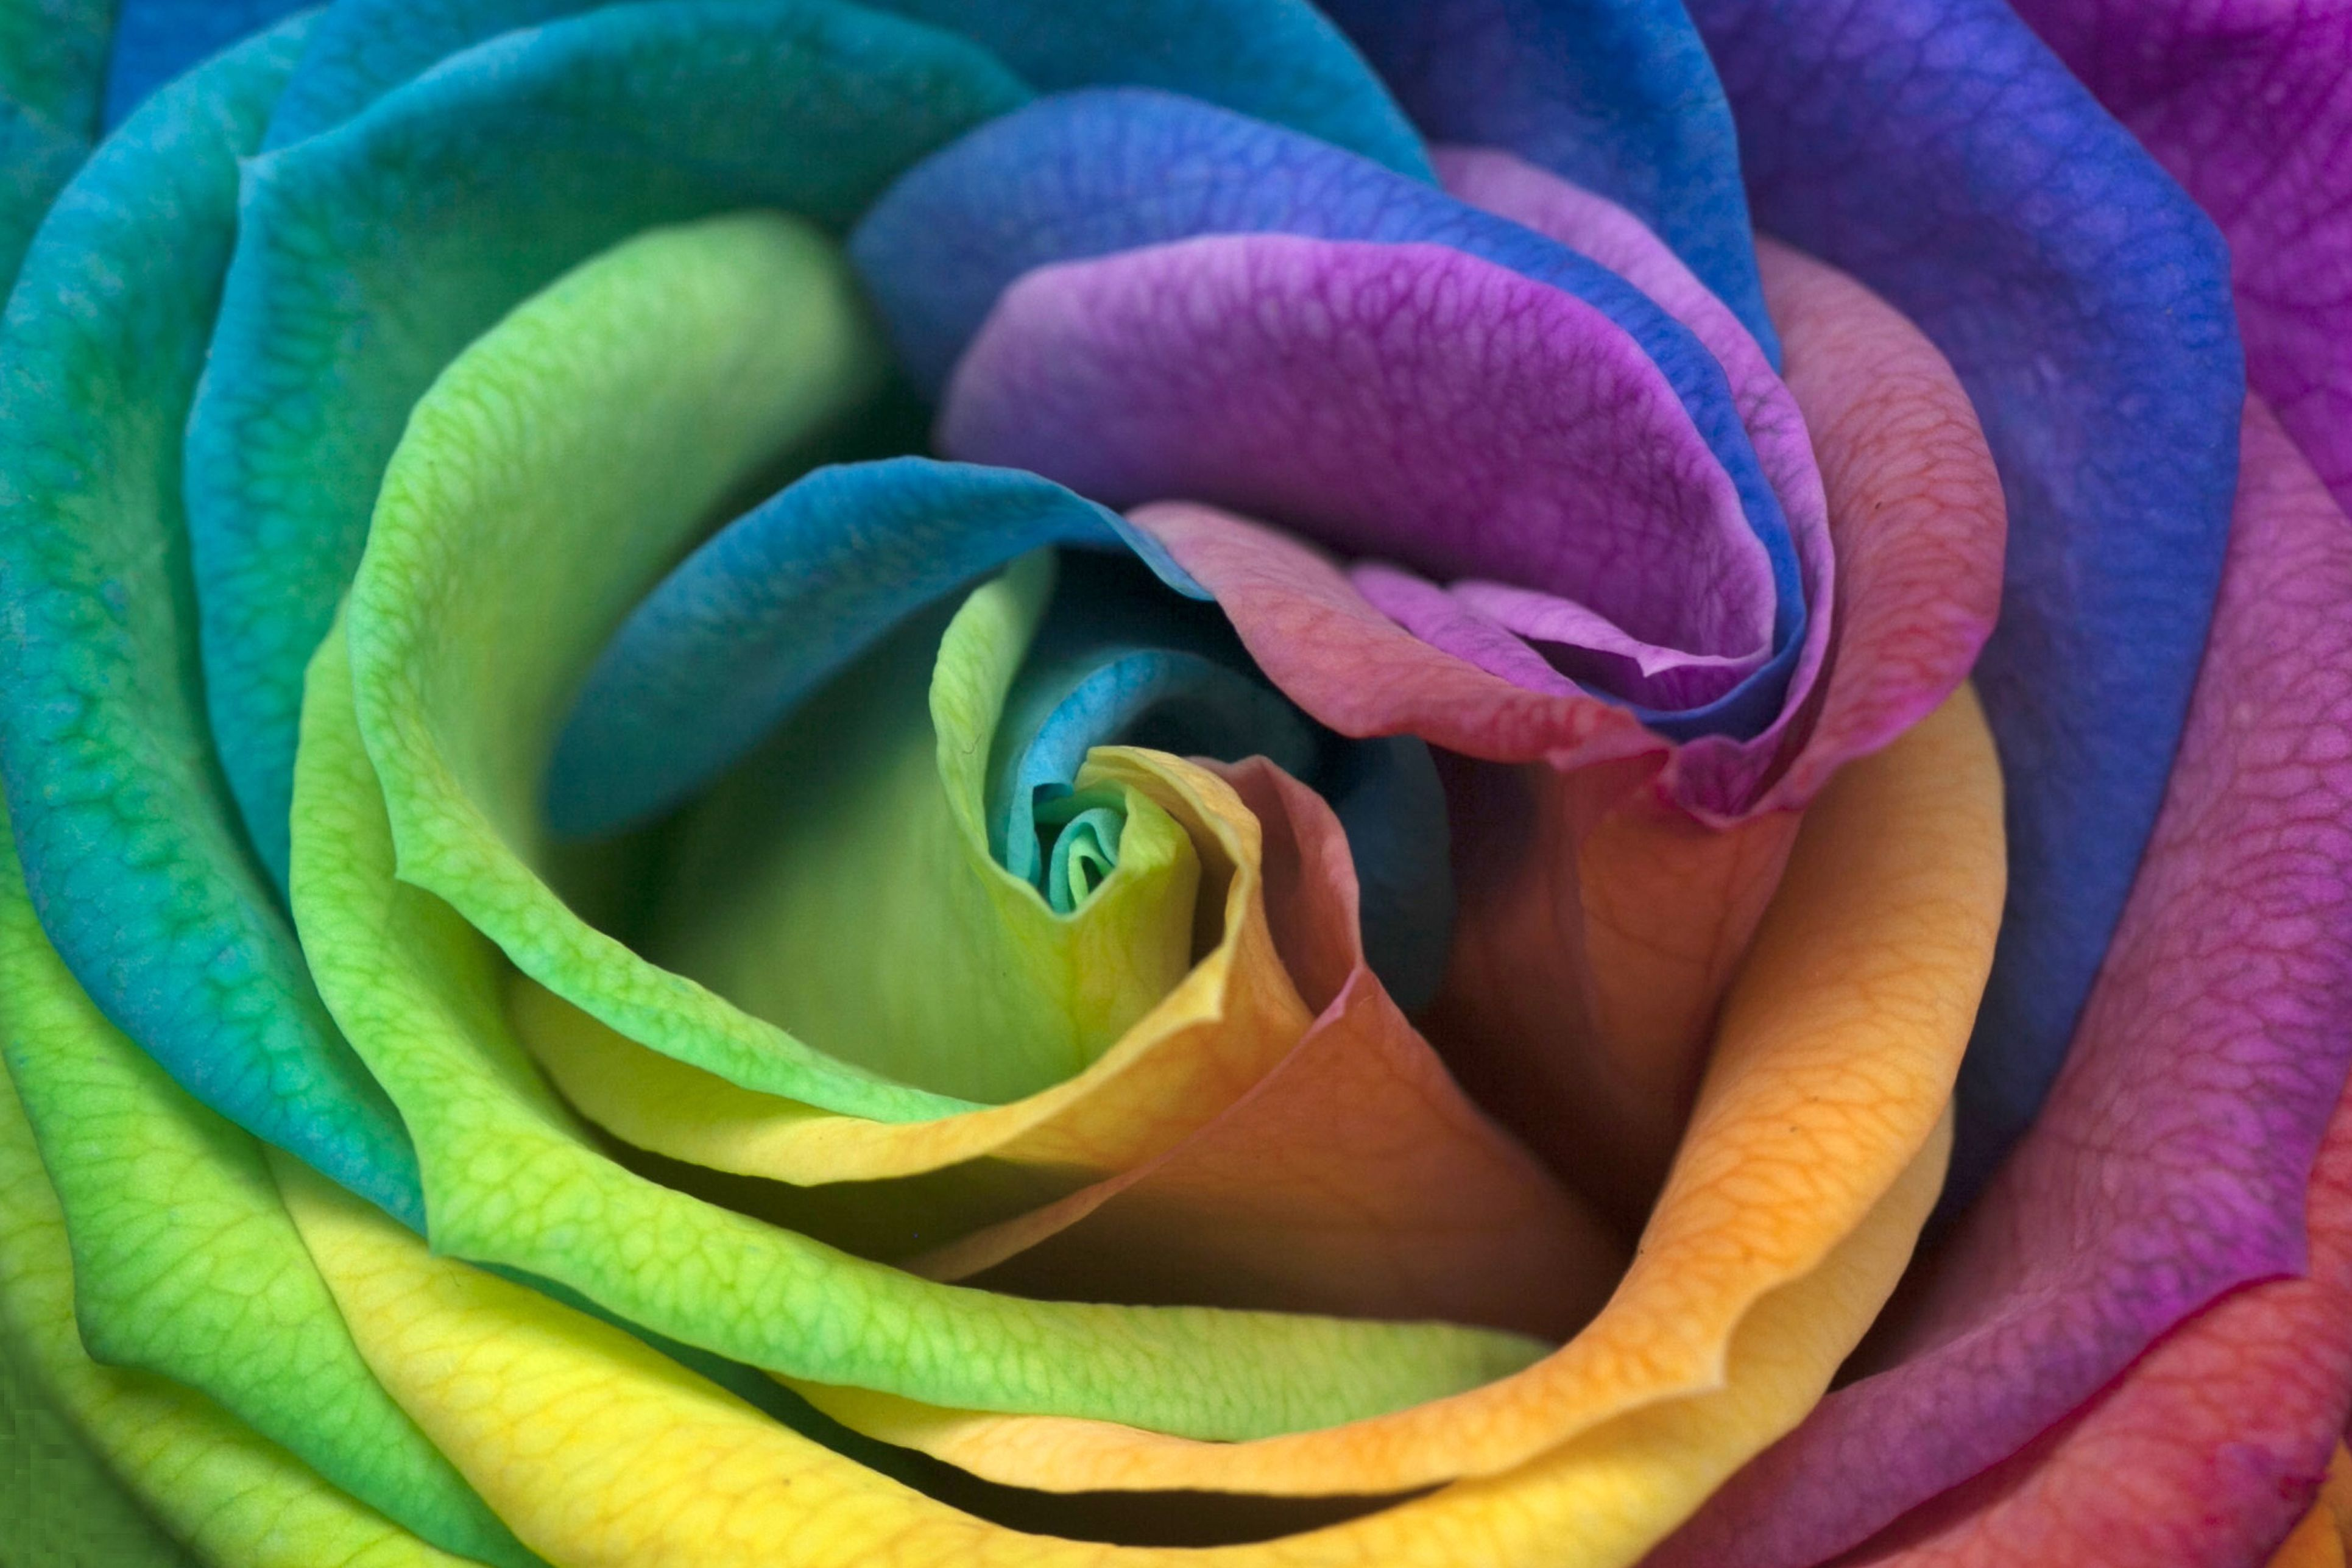 14 rose color meanings what do the colors of roses mean for 14 rose color meanings what do the colors of roses mean for valentines day biocorpaavc Gallery